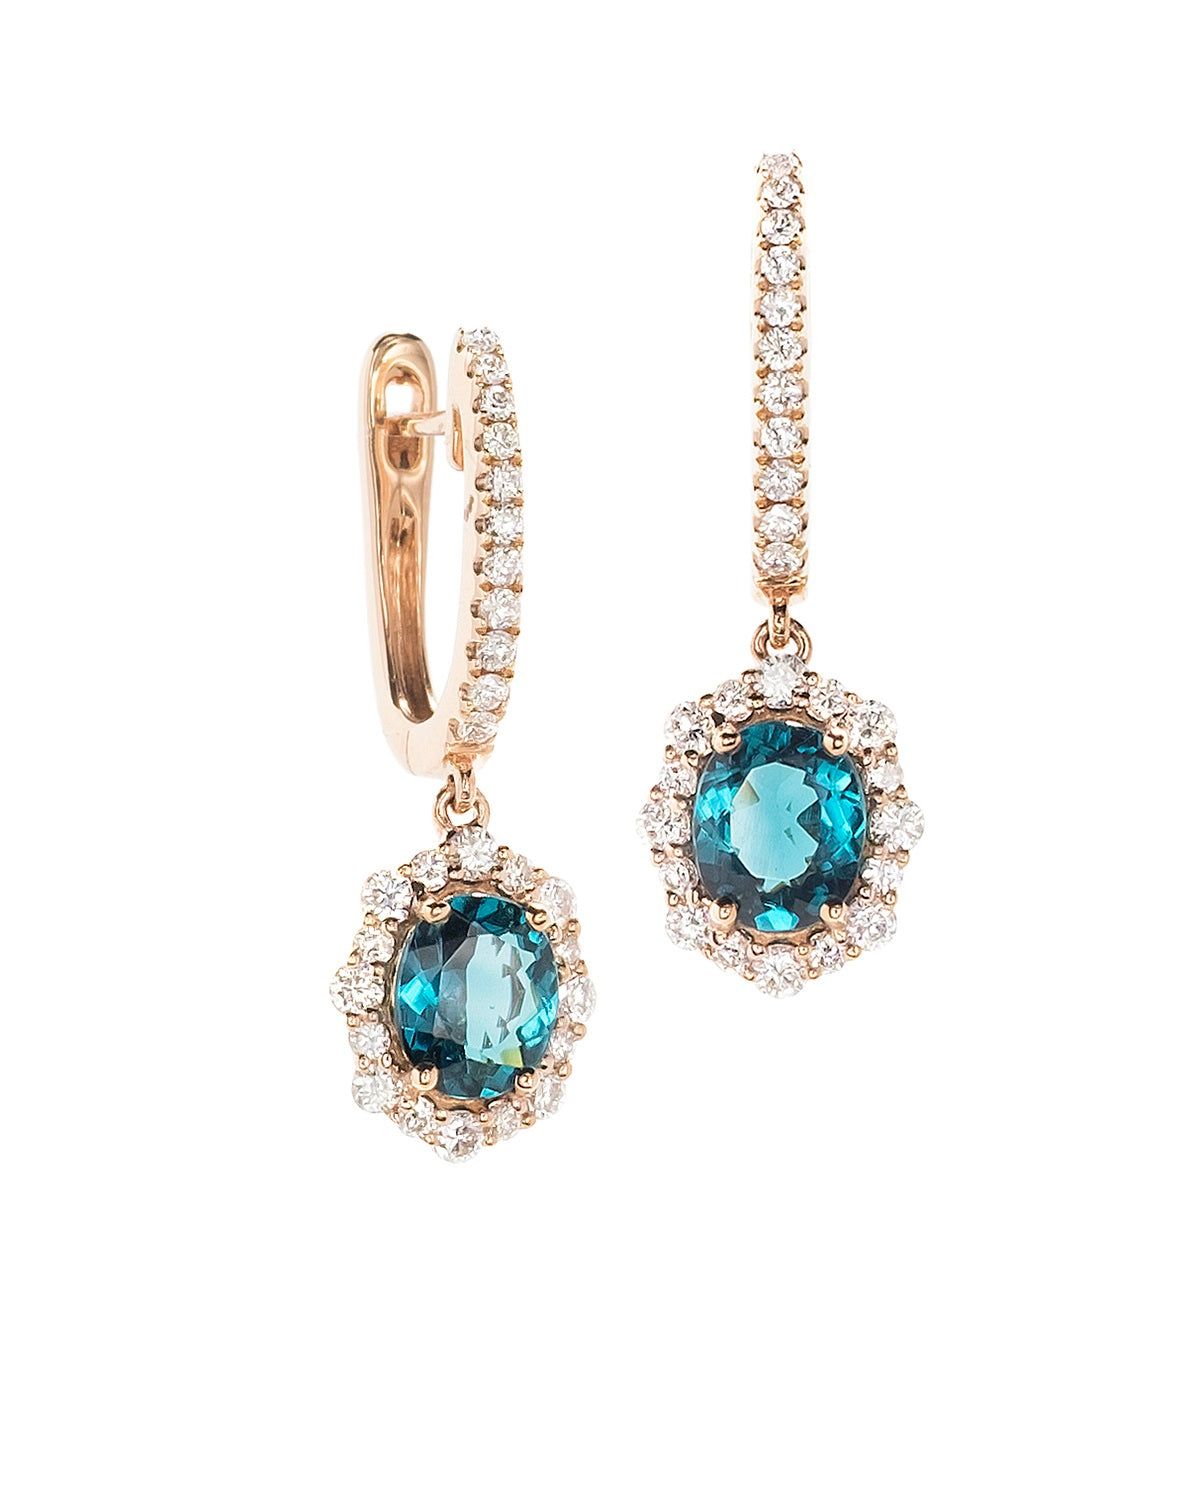 Blue Tourmalilne and Diamond Earrings in rose gold.